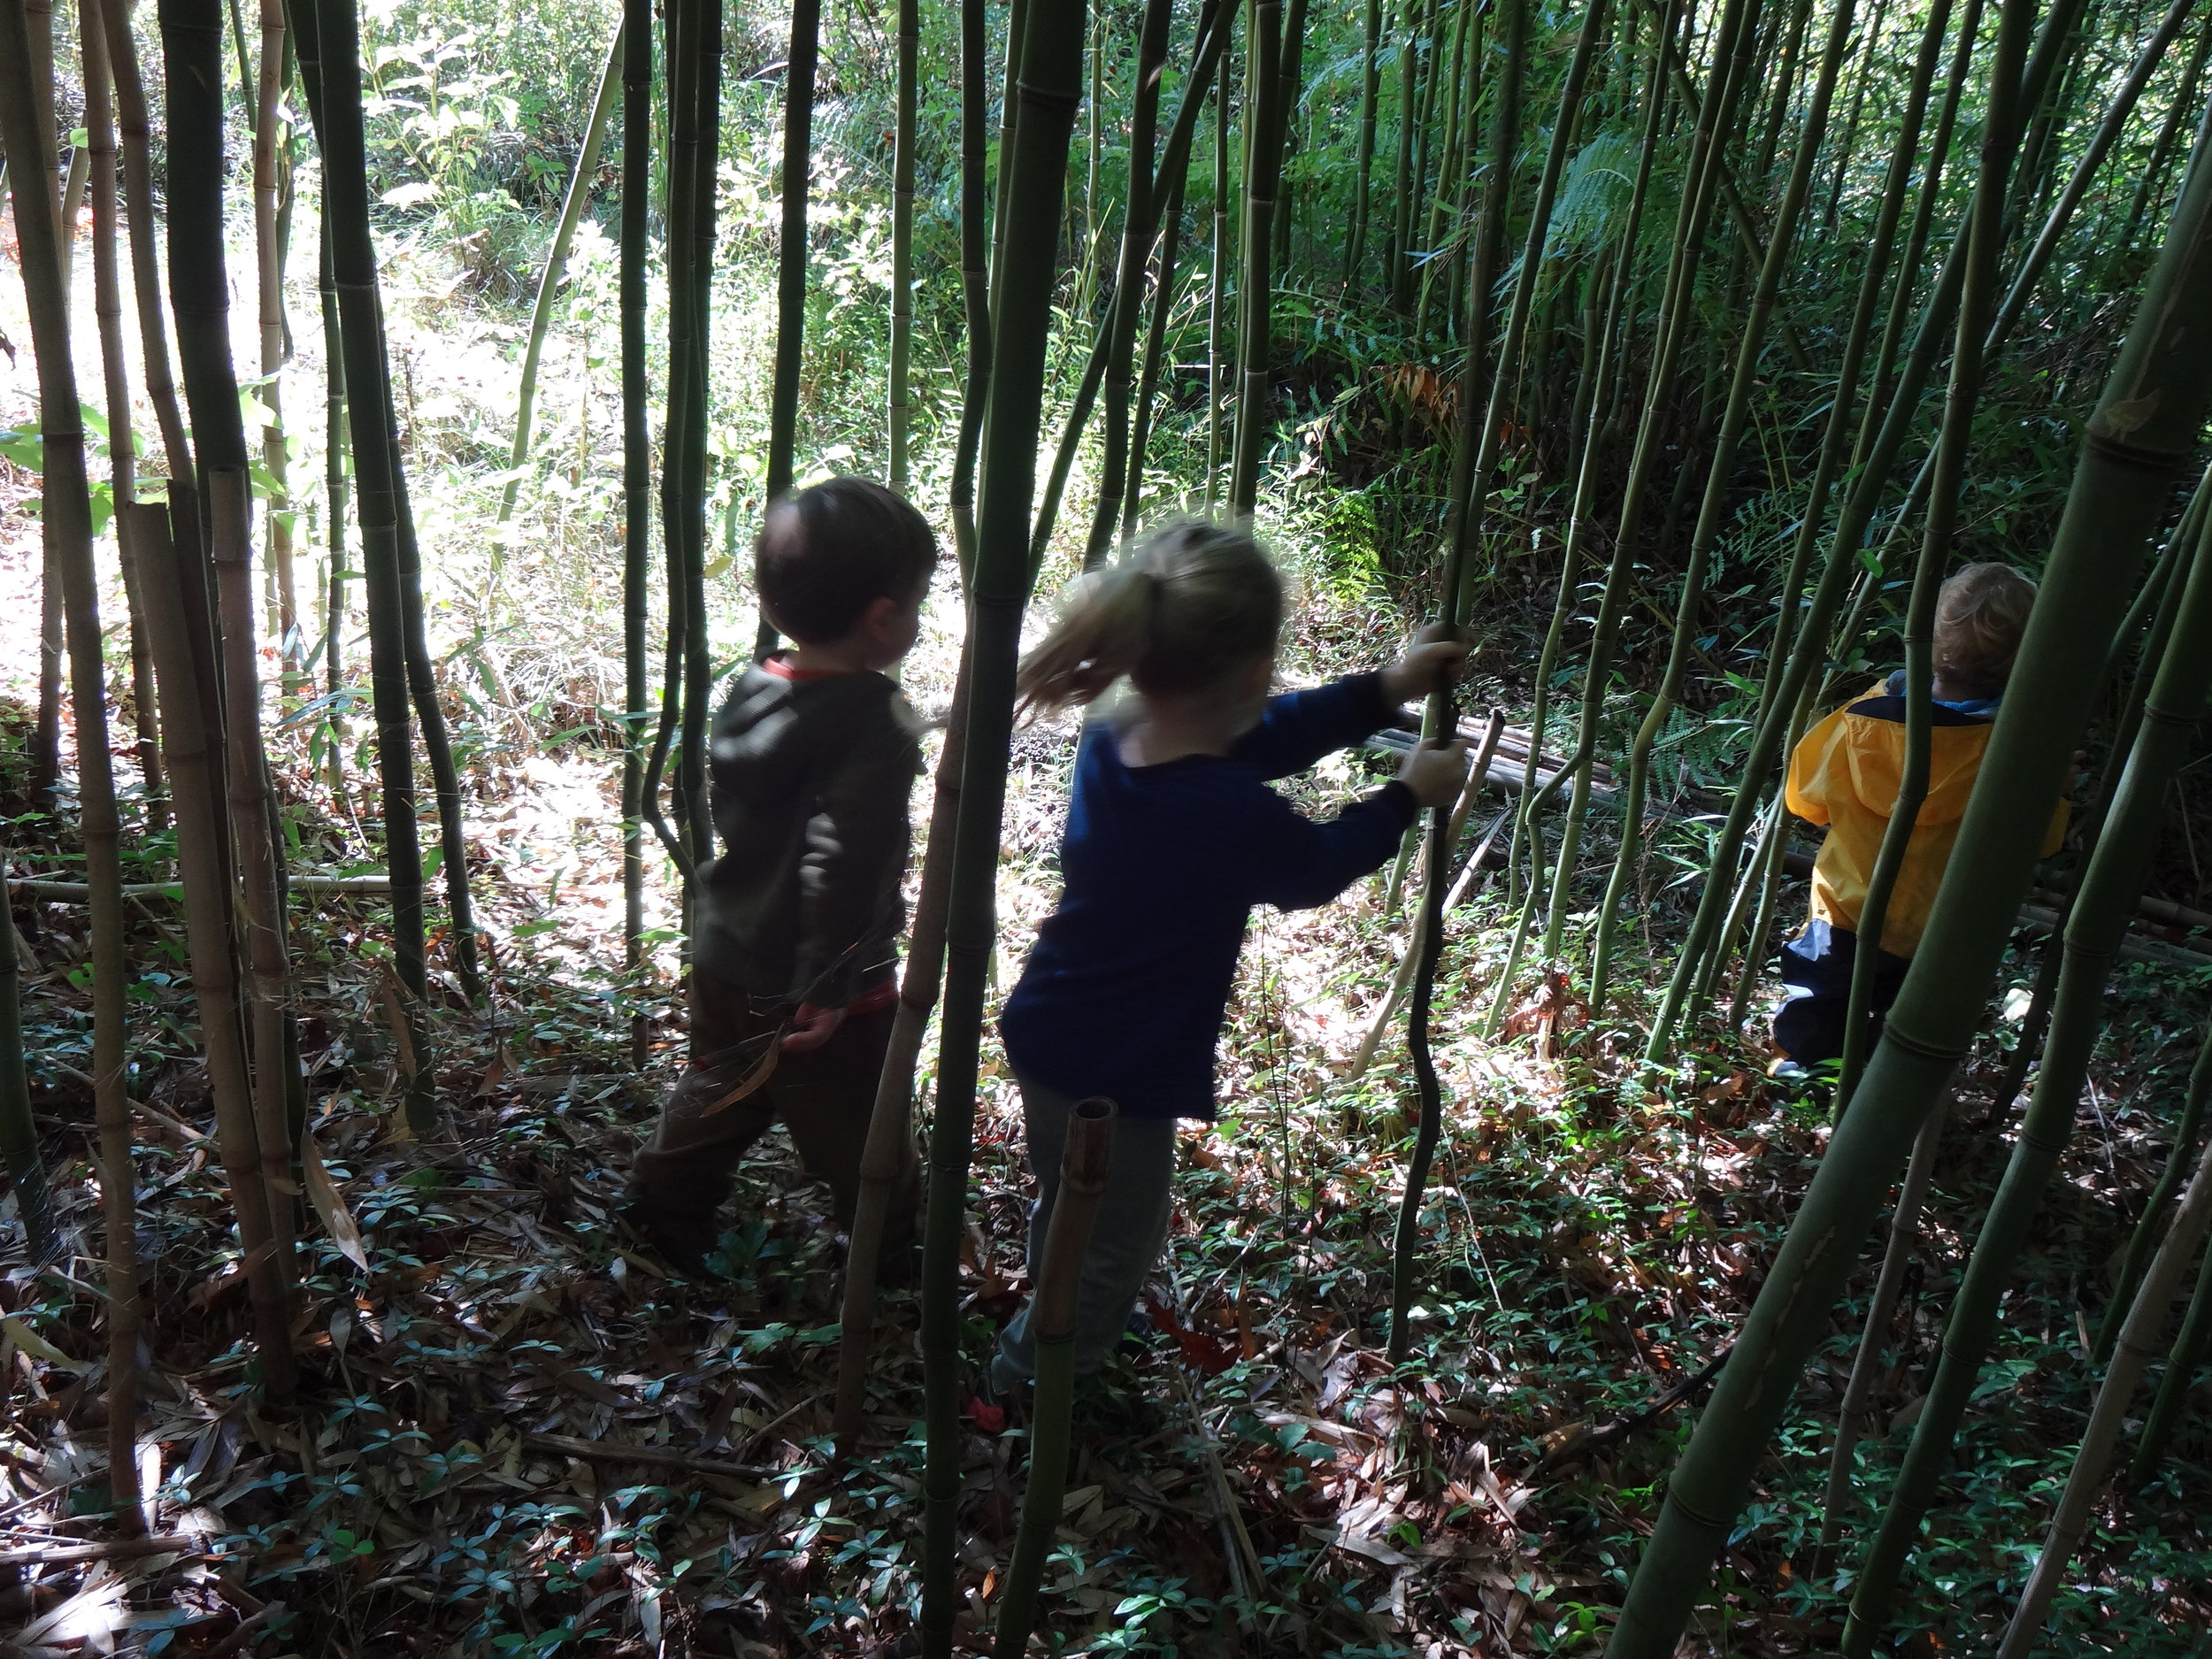 Bamboo forest is so cool and beautiful.  We enjoy walking through them on Wednesdays and Fridays.